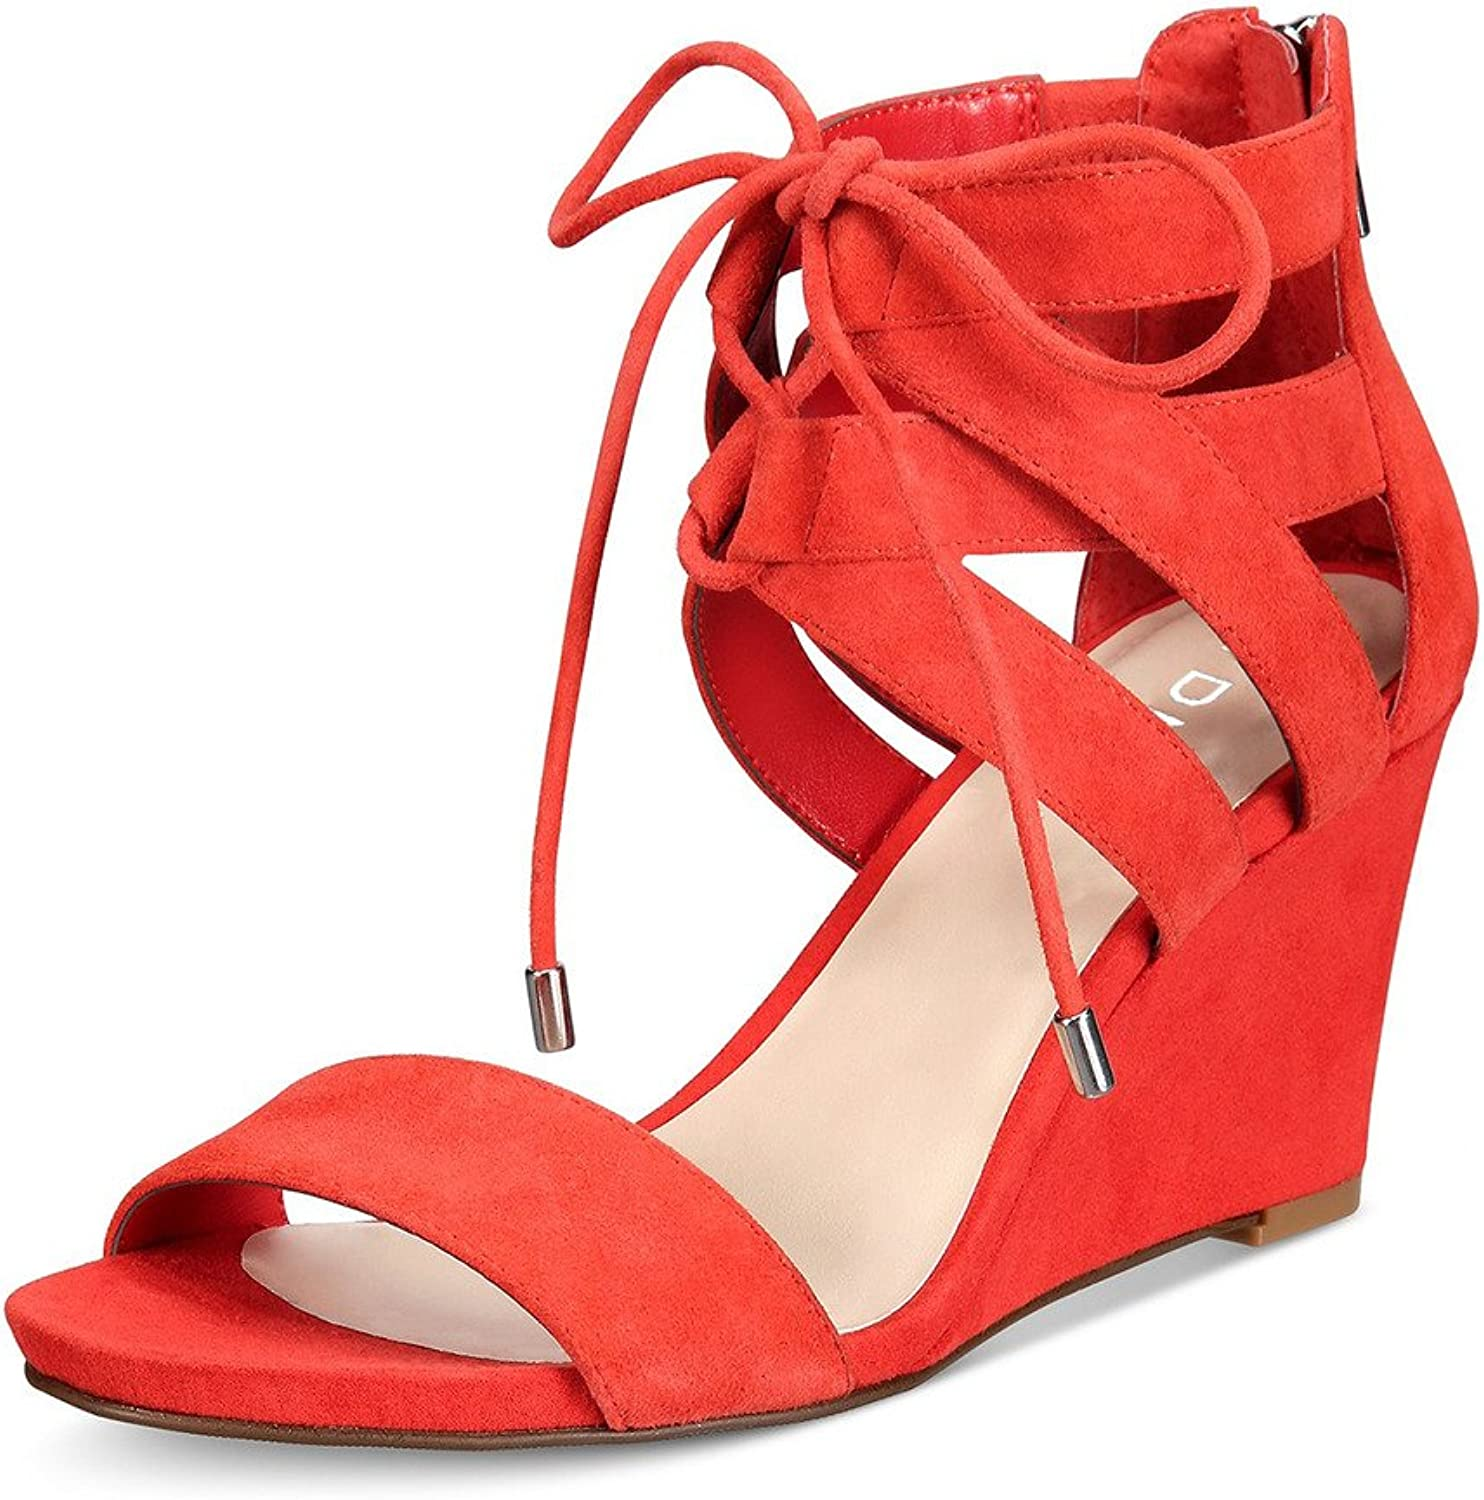 YDN Women Sexy Lace-up Ankle High Wedges Sandals Open Toe Mid Heels shoes with Zipper